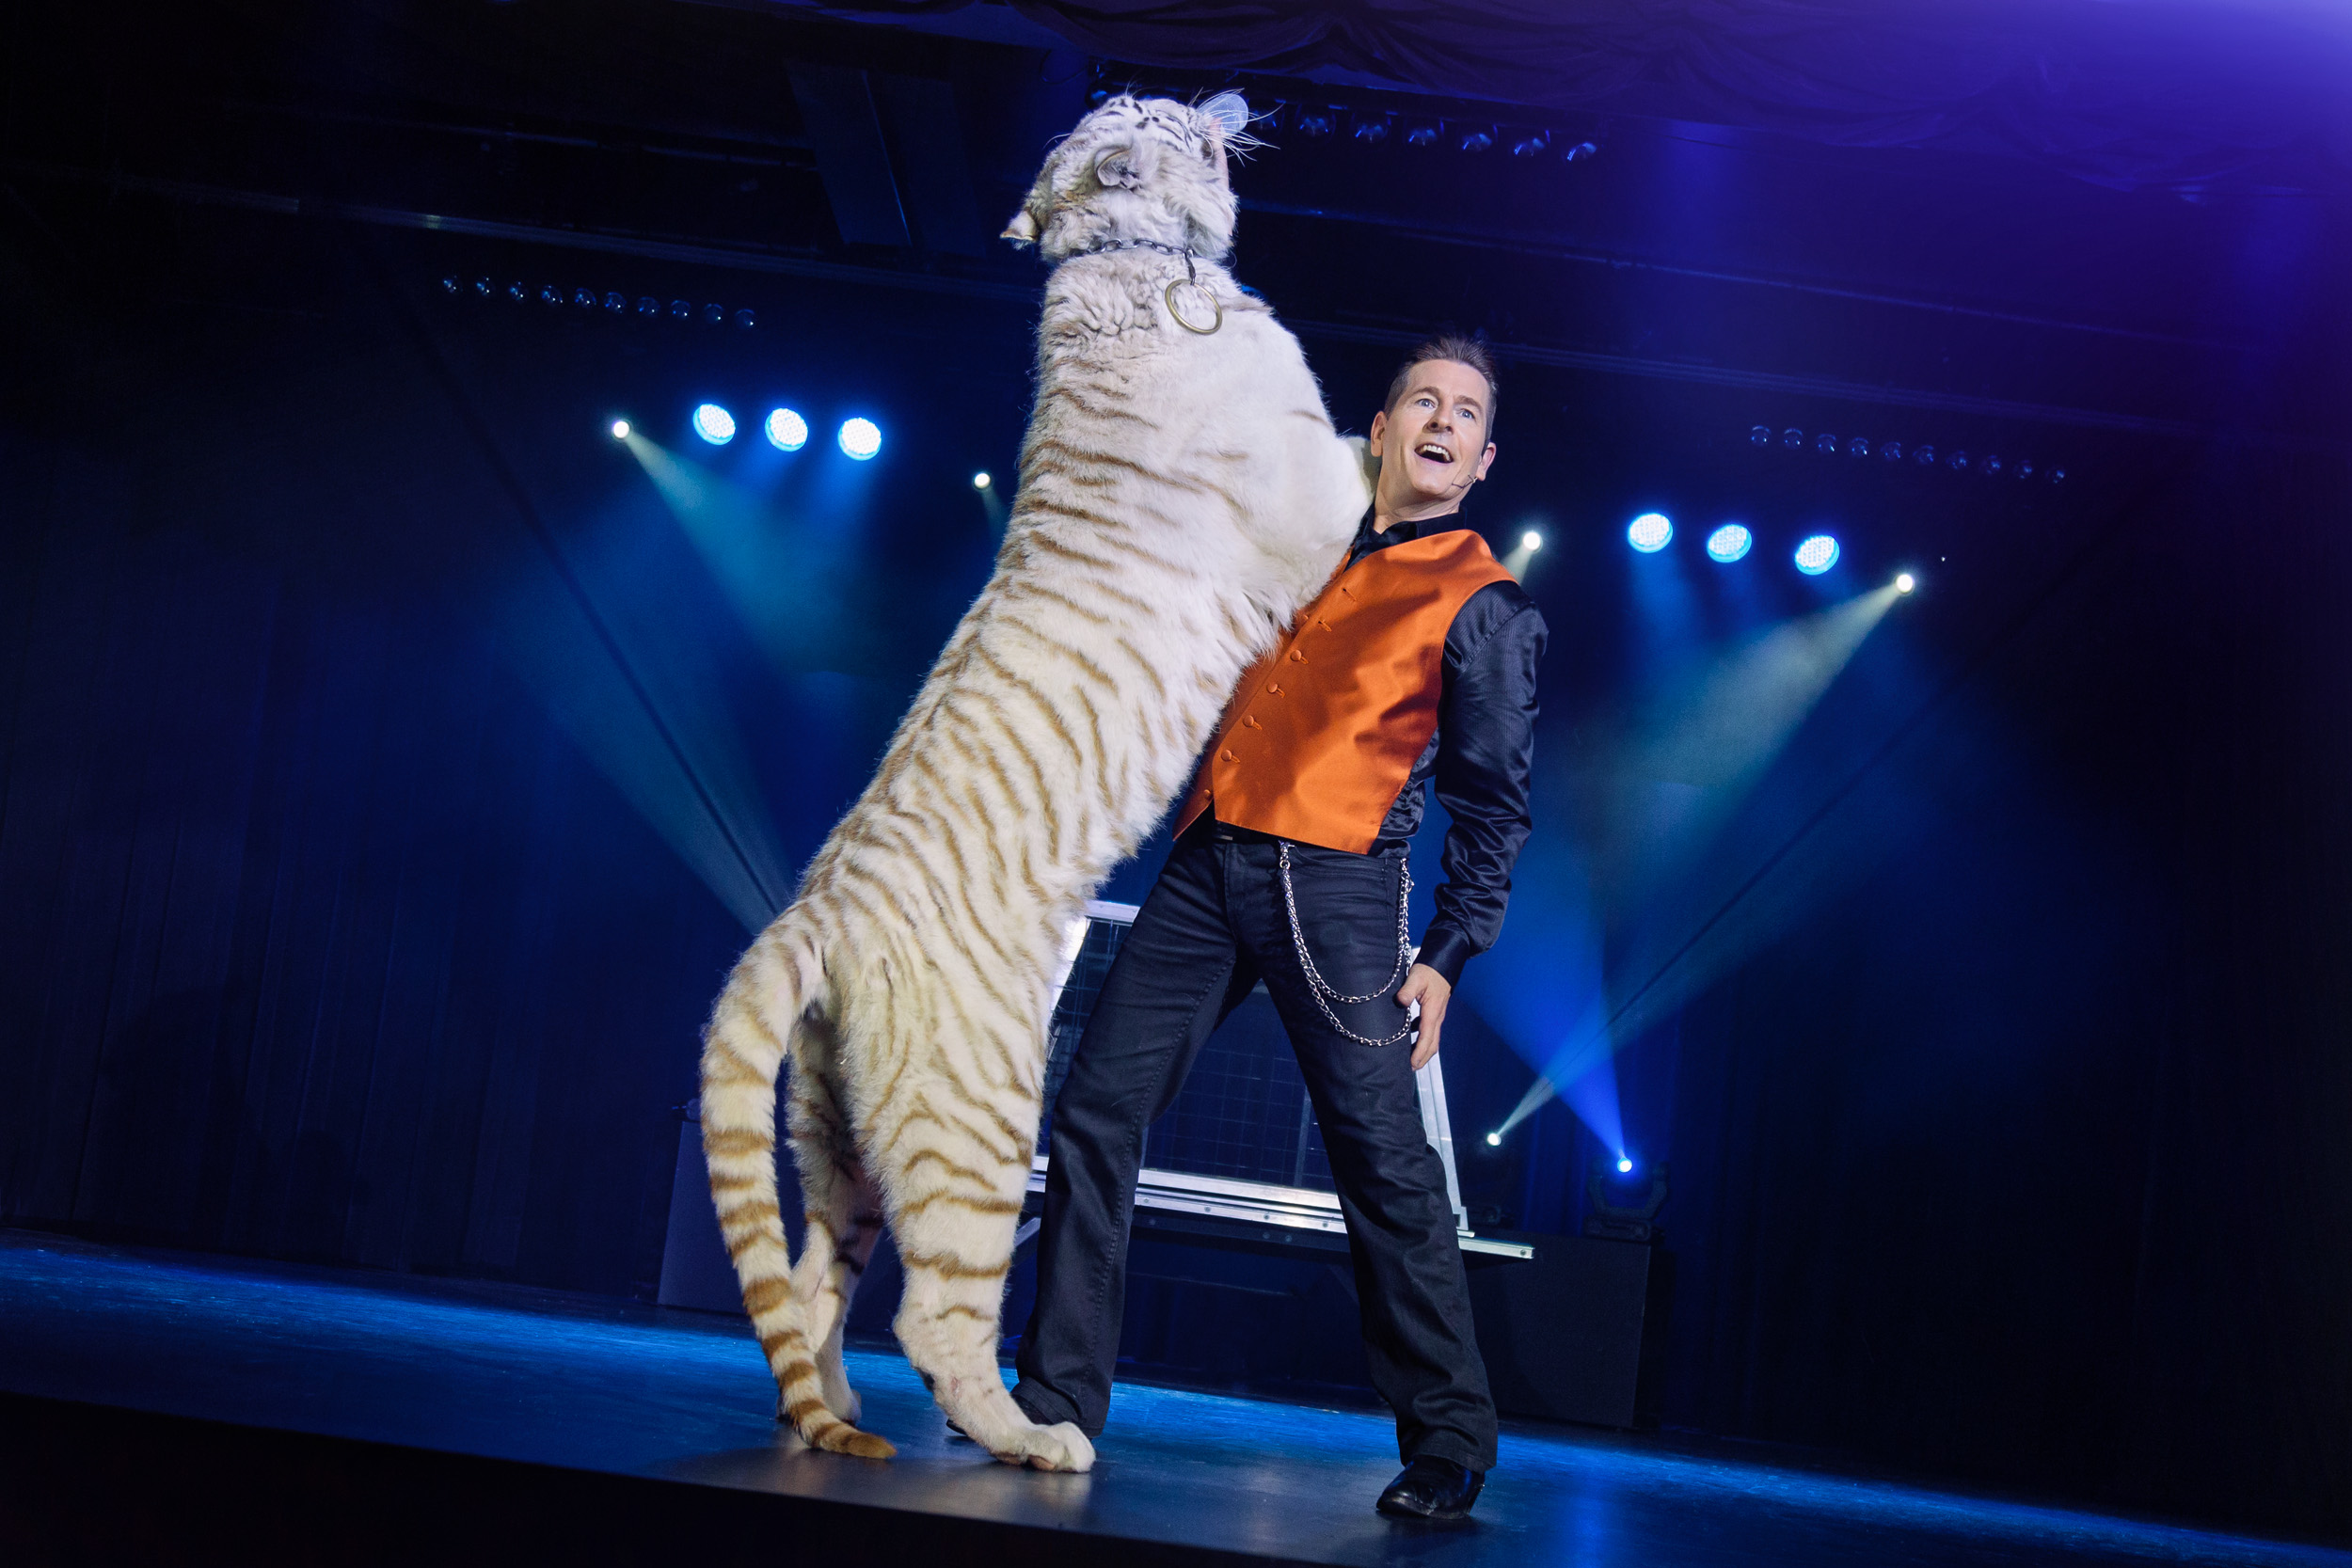 Greg frewin show niagara falls 3 girls white tiger blue - Show me a picture of the tiger ...